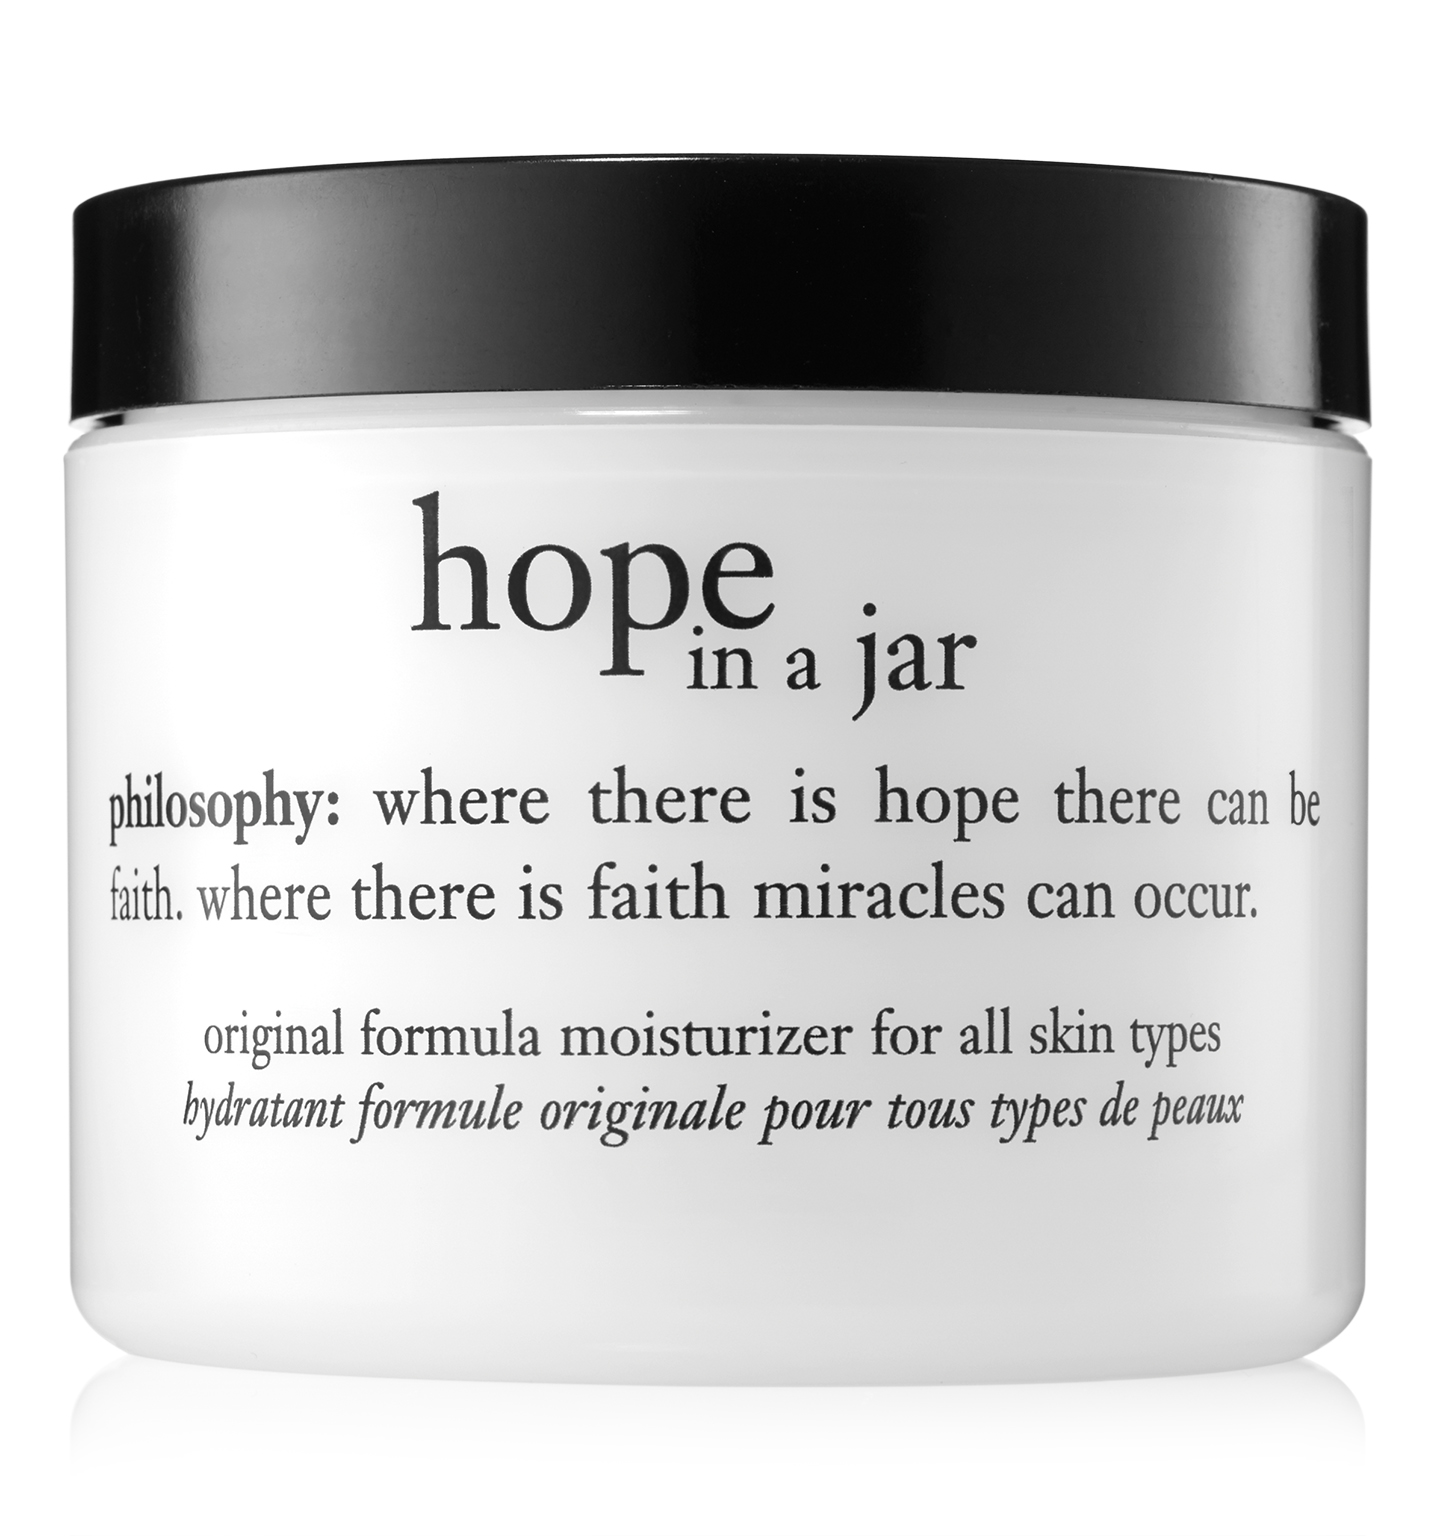 philosophy, hope in a jar 4oz. moisturizer